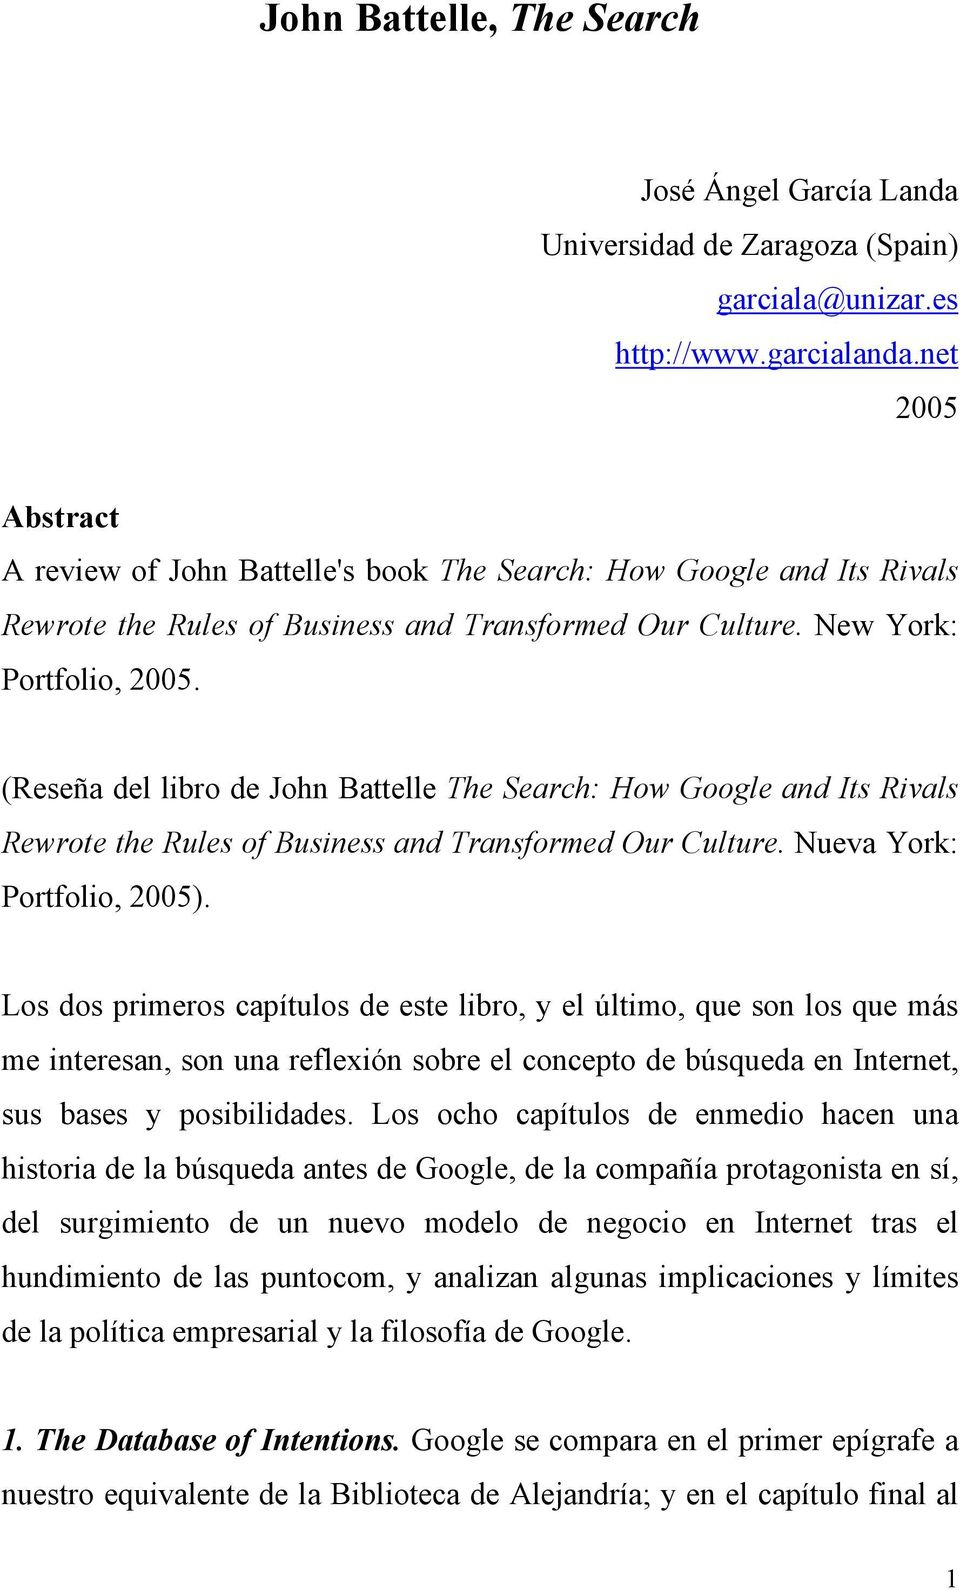 (Reseña del libro de John Battelle The Search: How Google and Its Rivals Rewrote the Rules of Business and Transformed Our Culture. Nueva York: Portfolio, 2005).